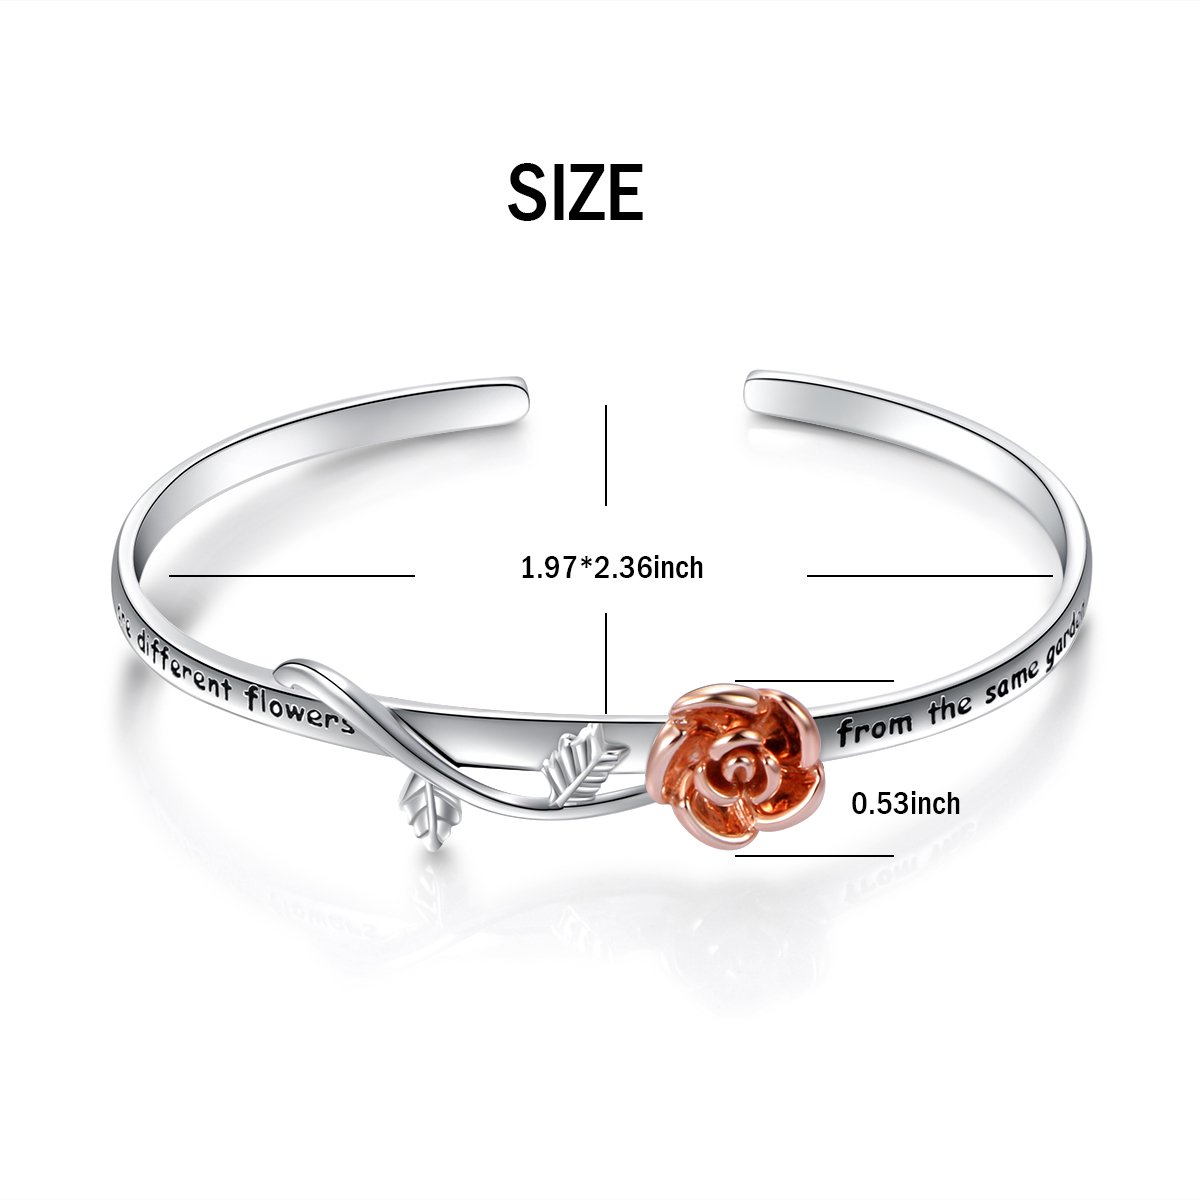 cf0969f9269 Amazon.com  S925 Sterling Silver Sisters Are Flowers From The Same Garden  Cuff Bangle Adjustable Bracelet  Jewelry